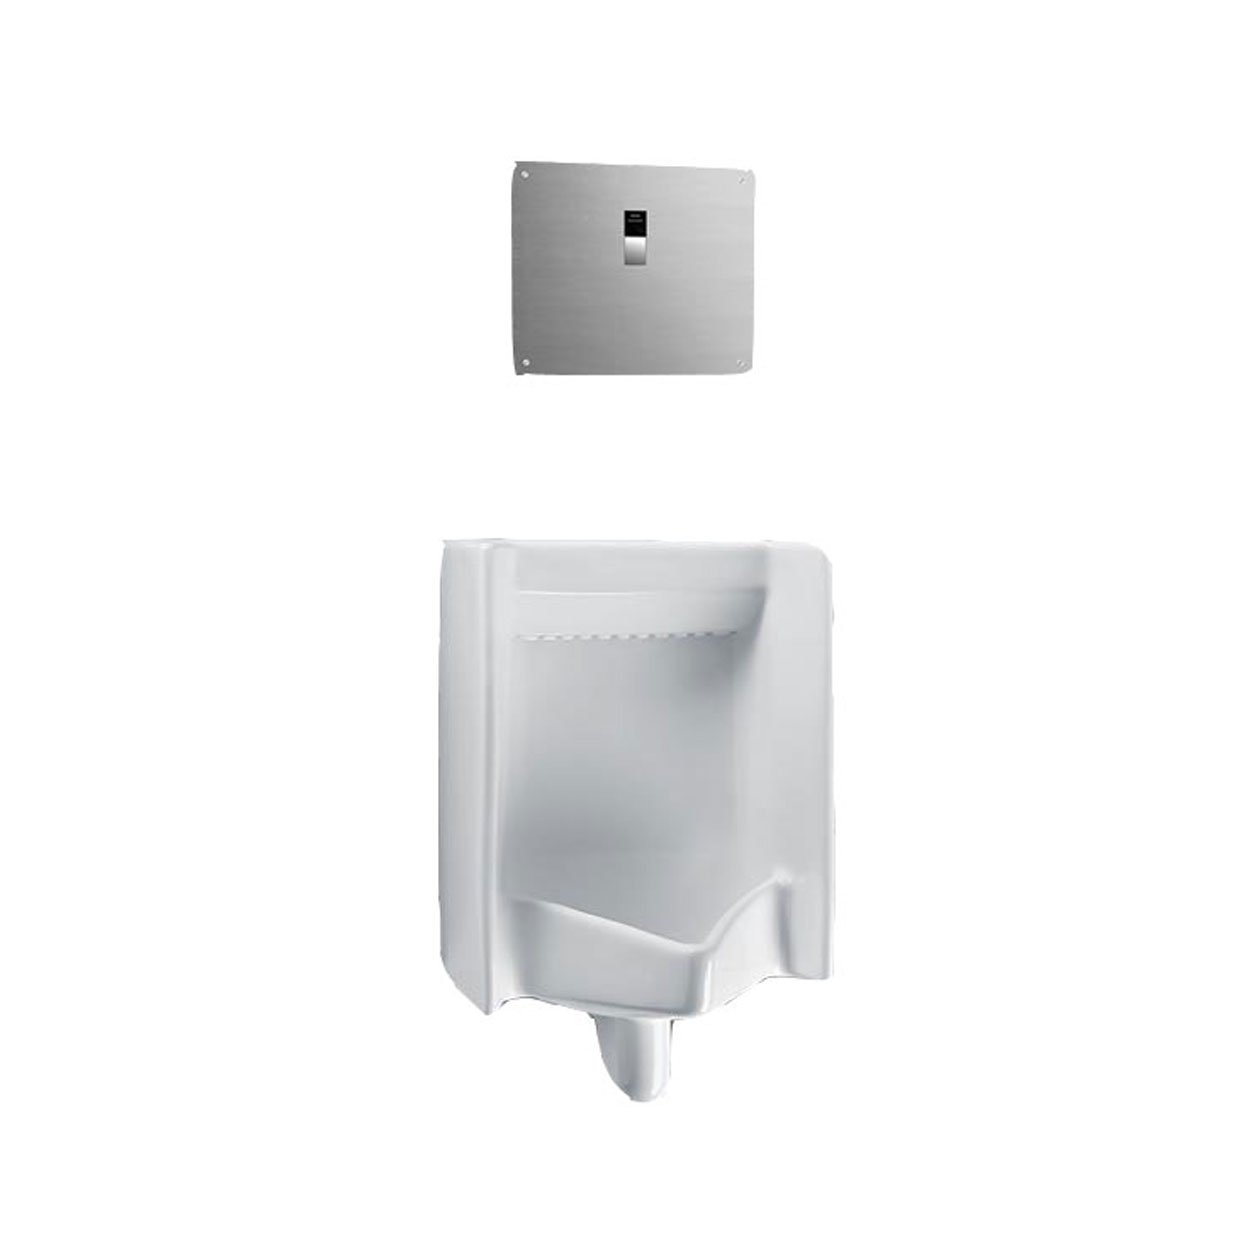 Toto UT445UV#01 Commercial Washout High Efficiency 0.125 GPF Cal-Green Urinal with Back Spud, White White